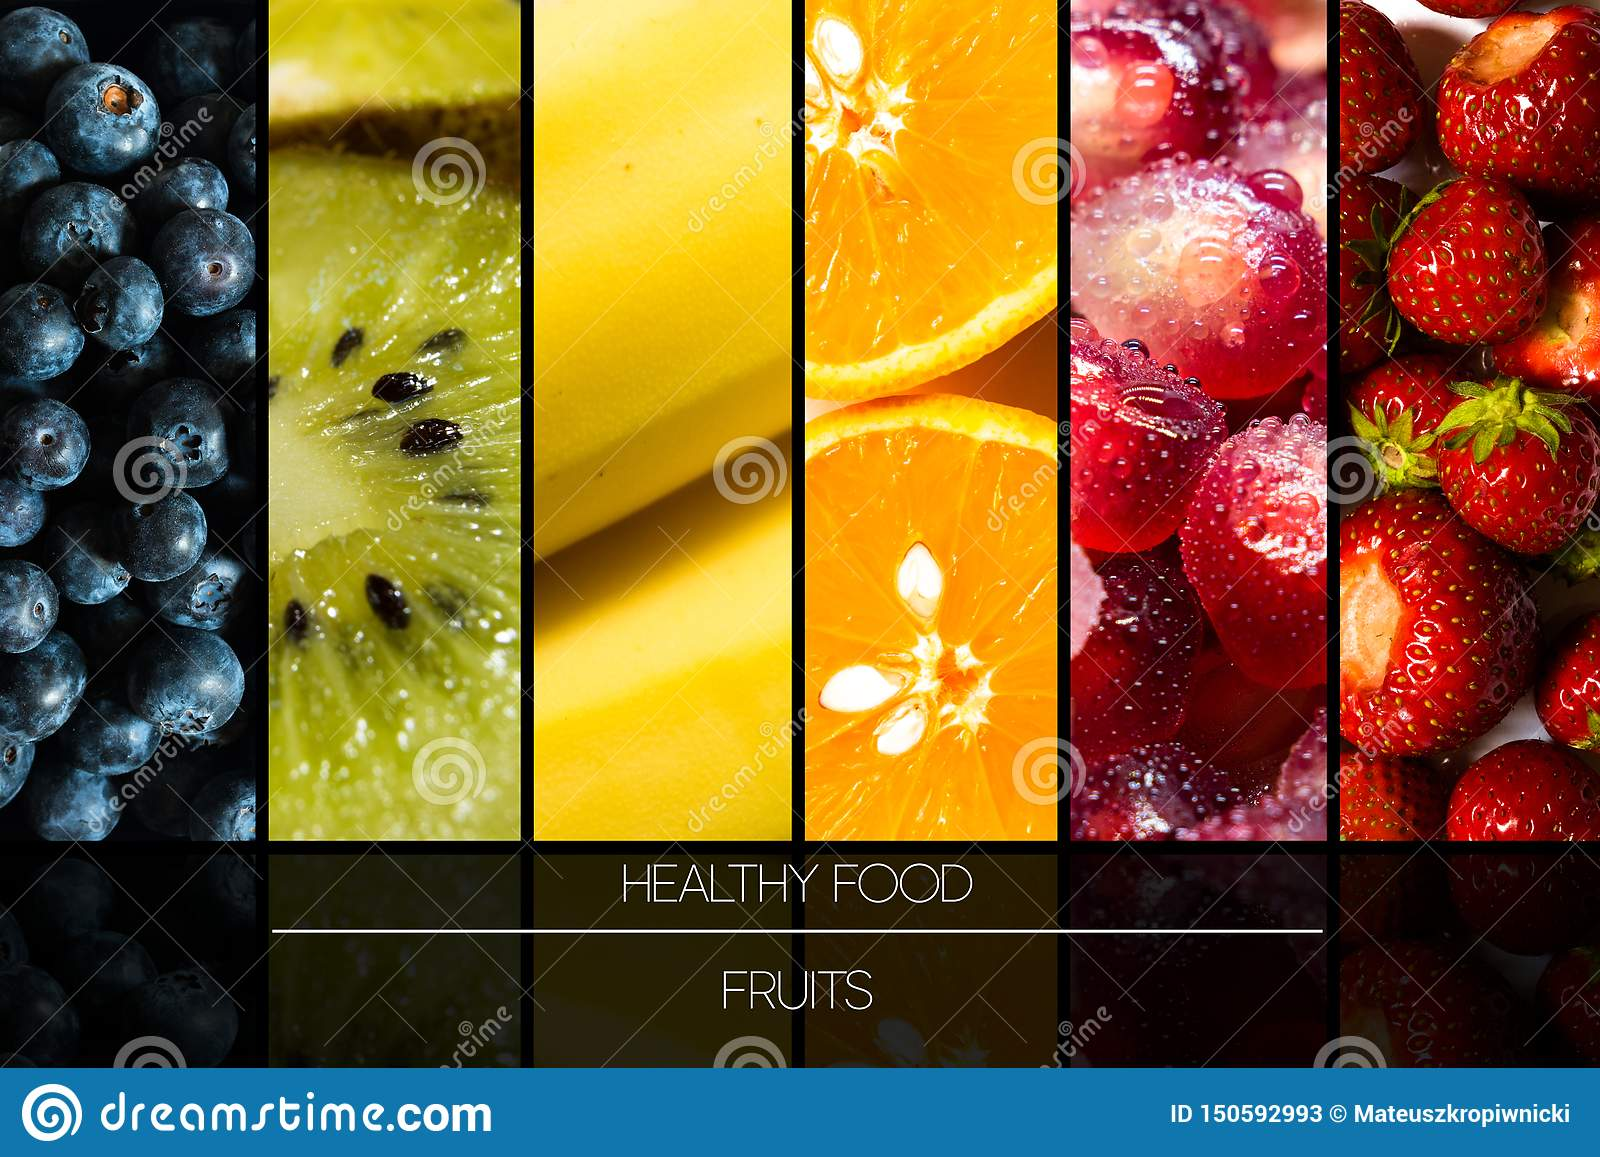 Seasonal Fruits Represented In Side By Side On Black Background With Reflections And Stock Image Image Of Calorie Juicy 150592993